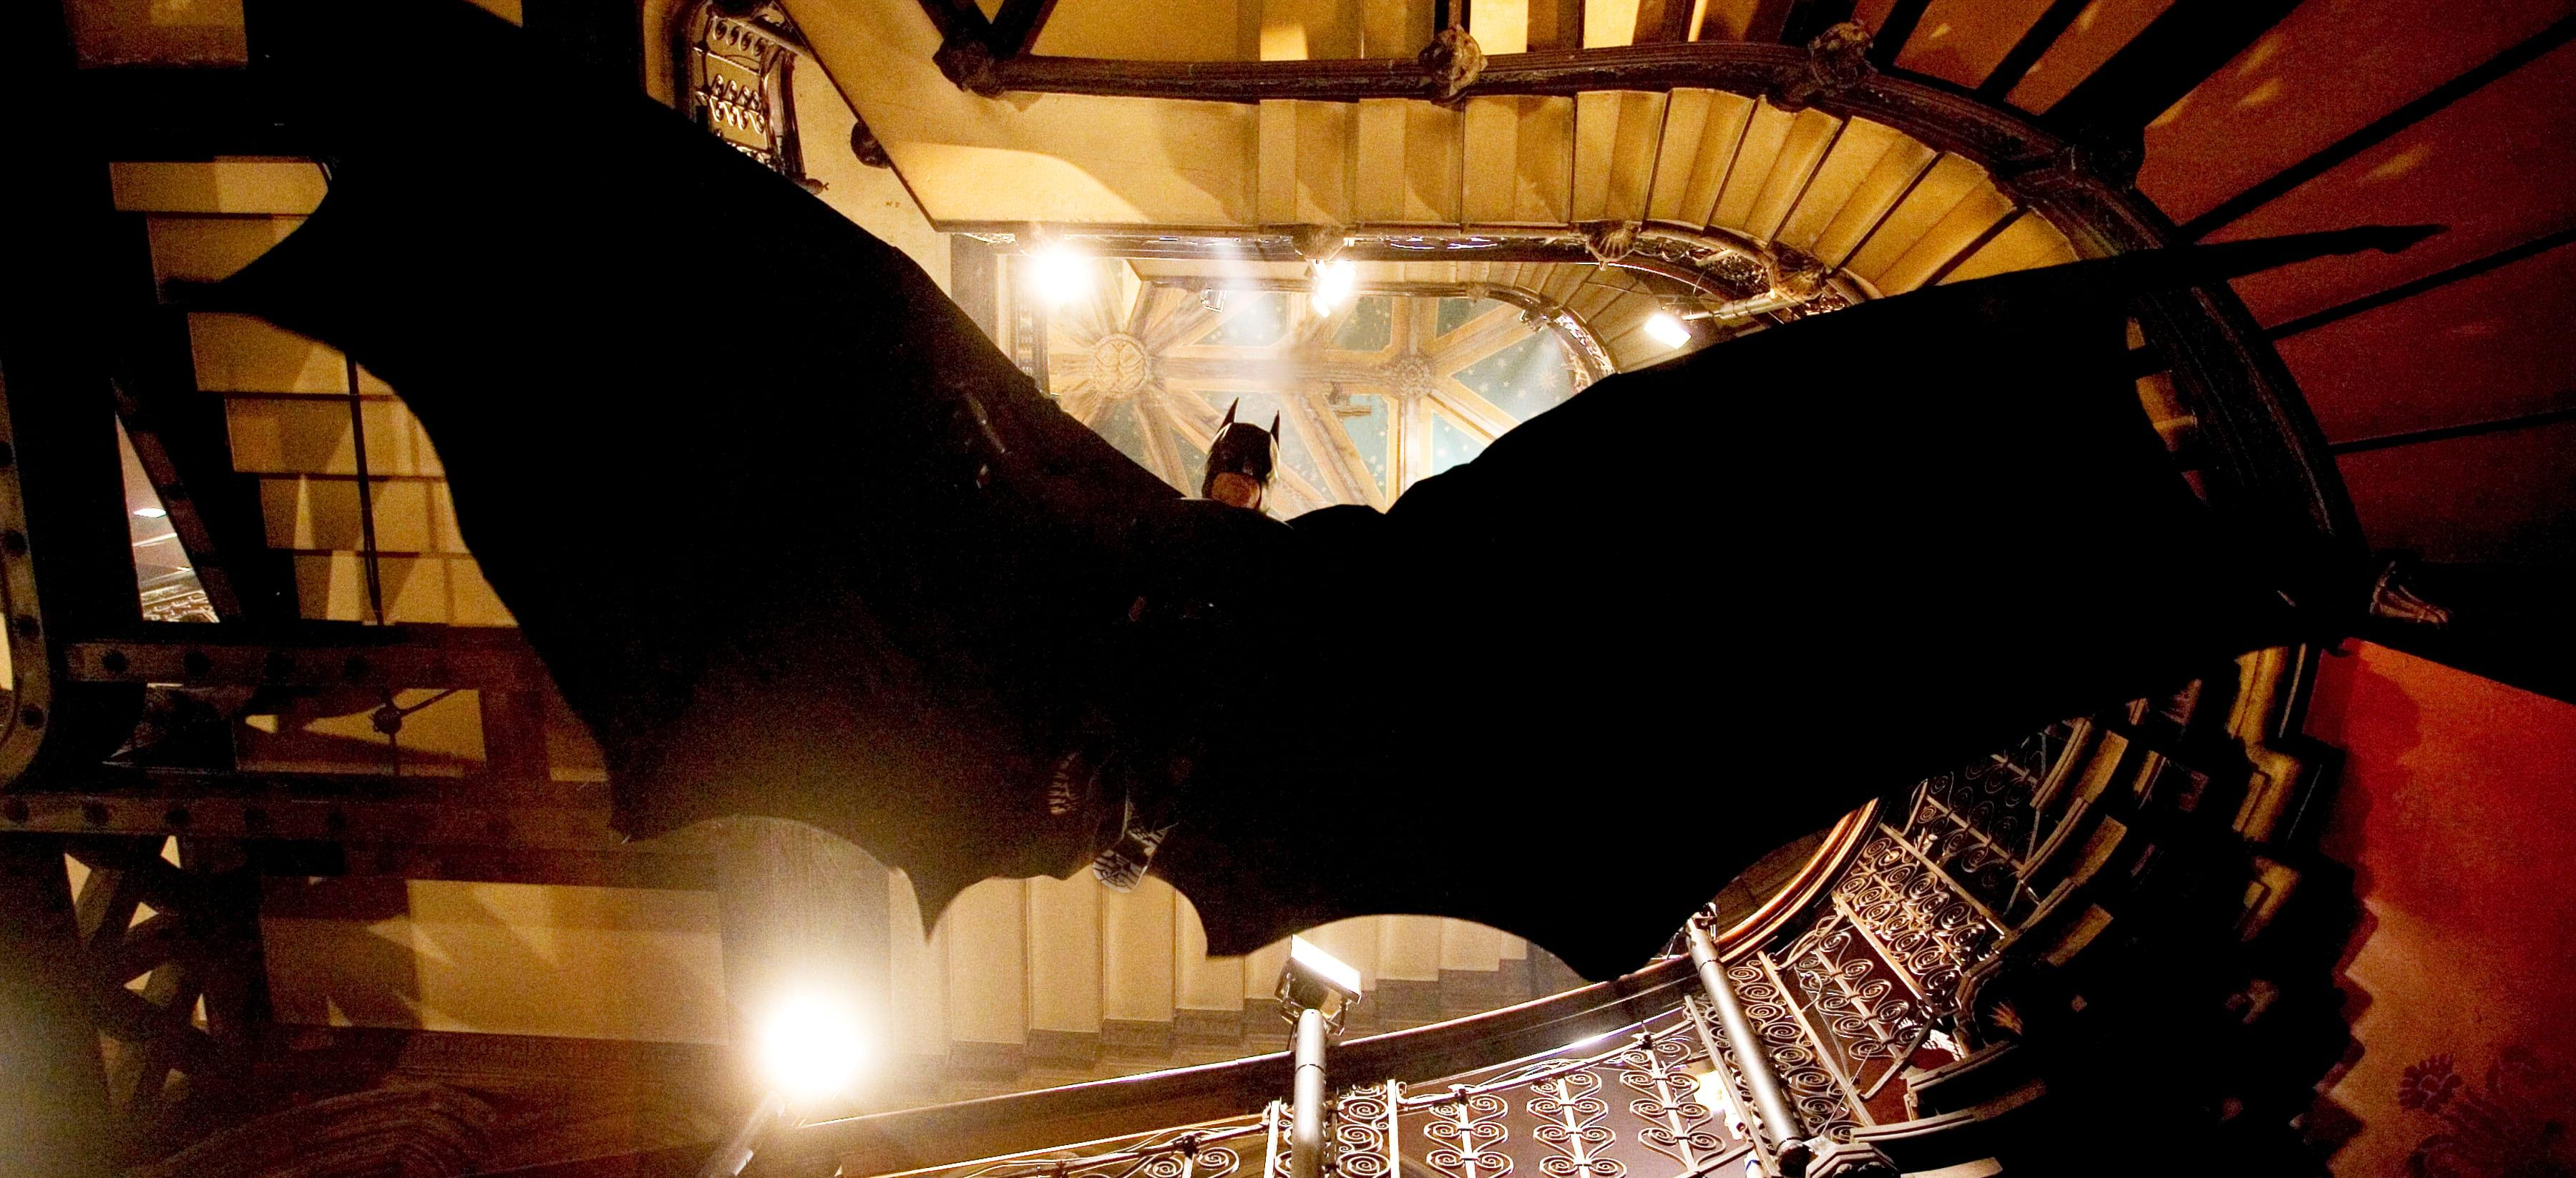 Batman Begins Featured Image